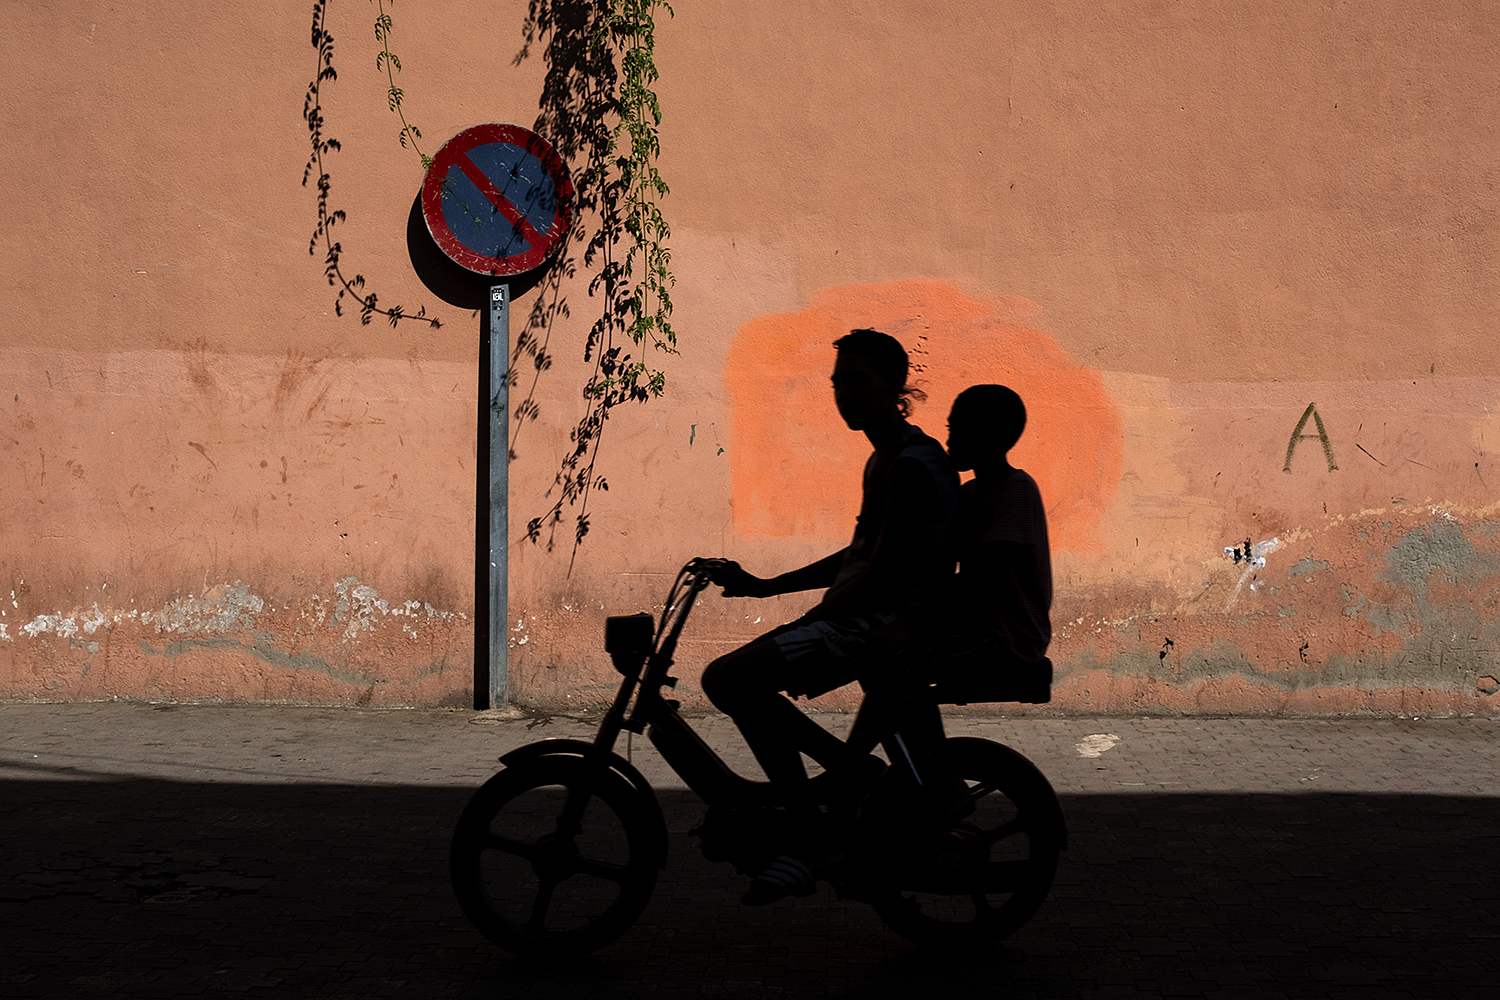 color street photography award of two boys shadow on a motorbike in Morocco by Costas Delhas